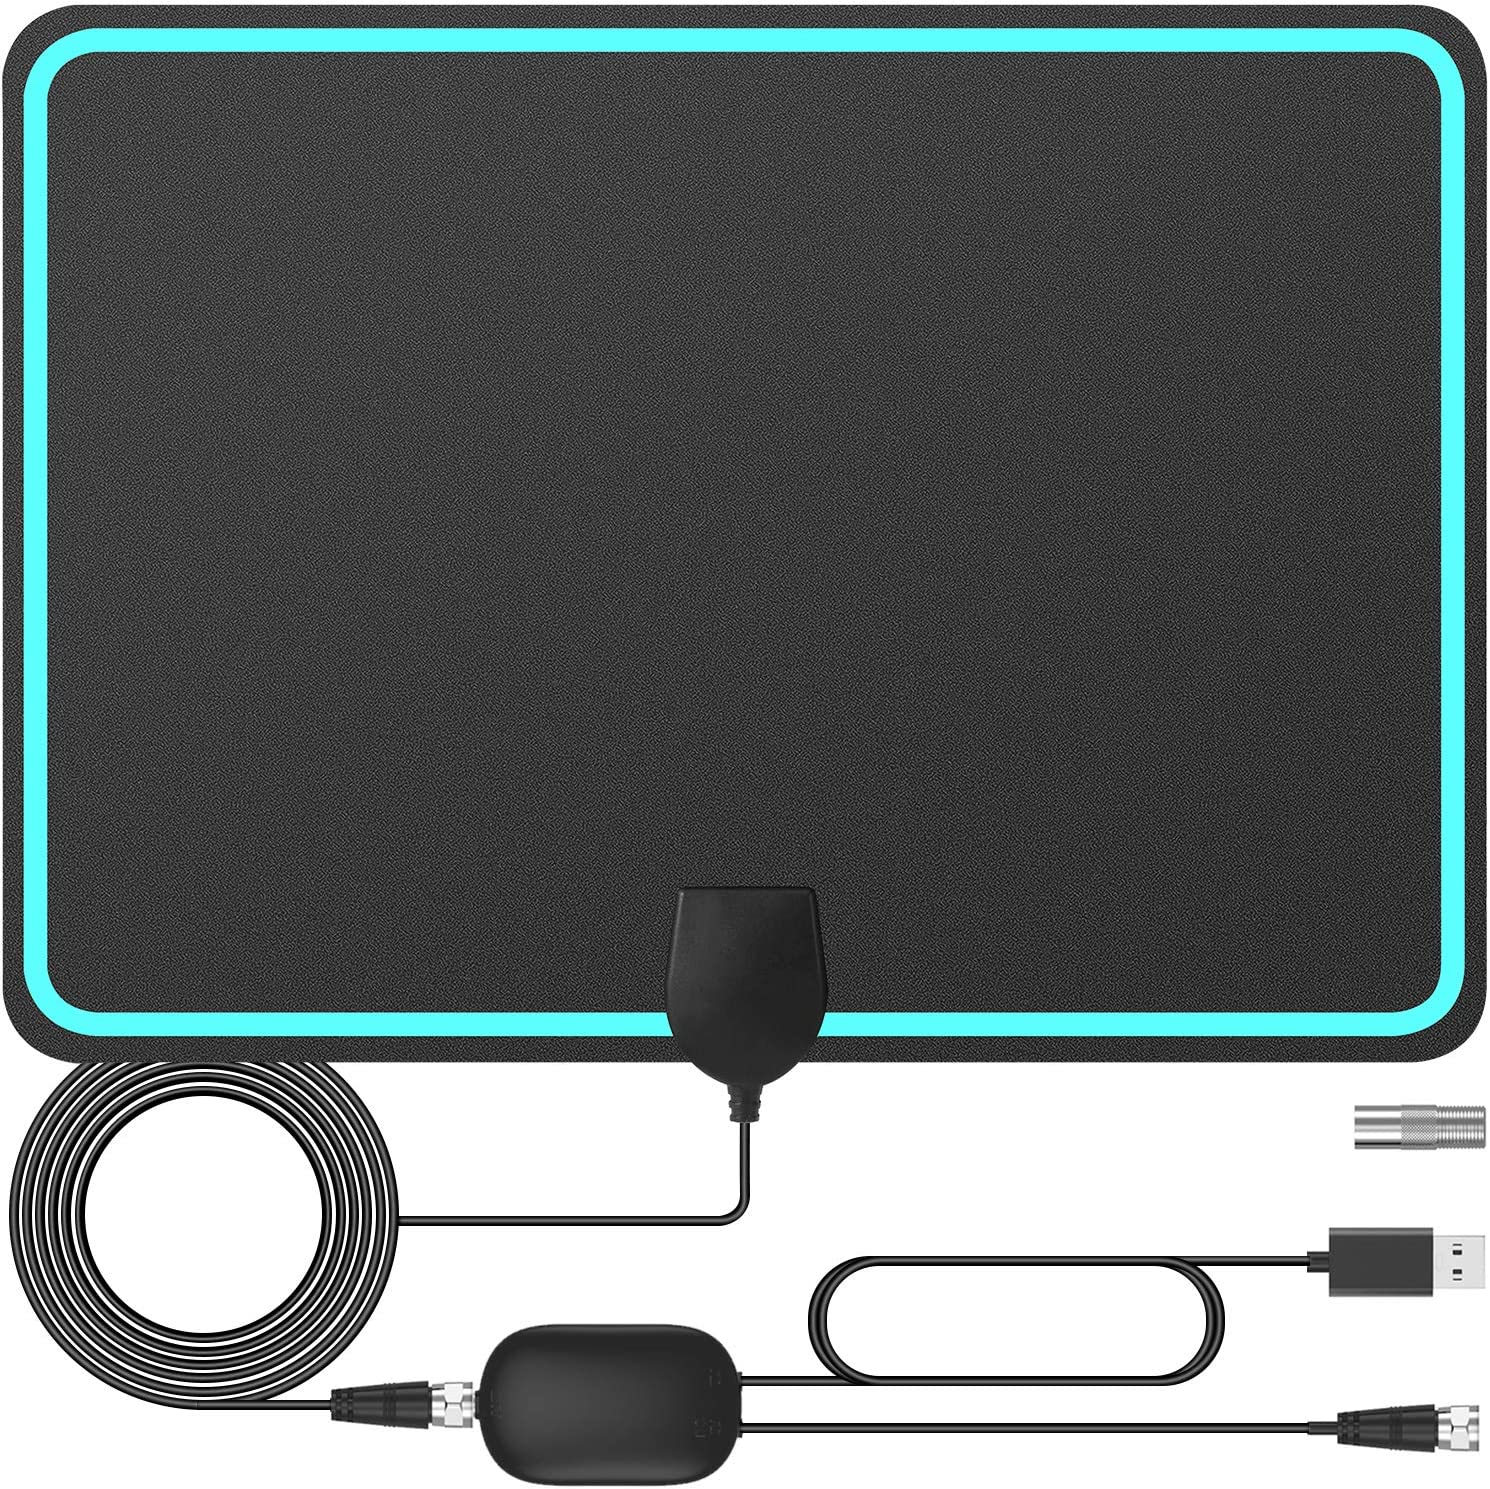 TV Antenna Digital HD Indoor, Ultra-Thin HDTV Antenna Freeview 150 Miles Range Support 4K 1080p HDTV and Smart TV, Signal Booster for 4K HD Local Channels 1080P VHF UHF - 16.5ft Coax Cable